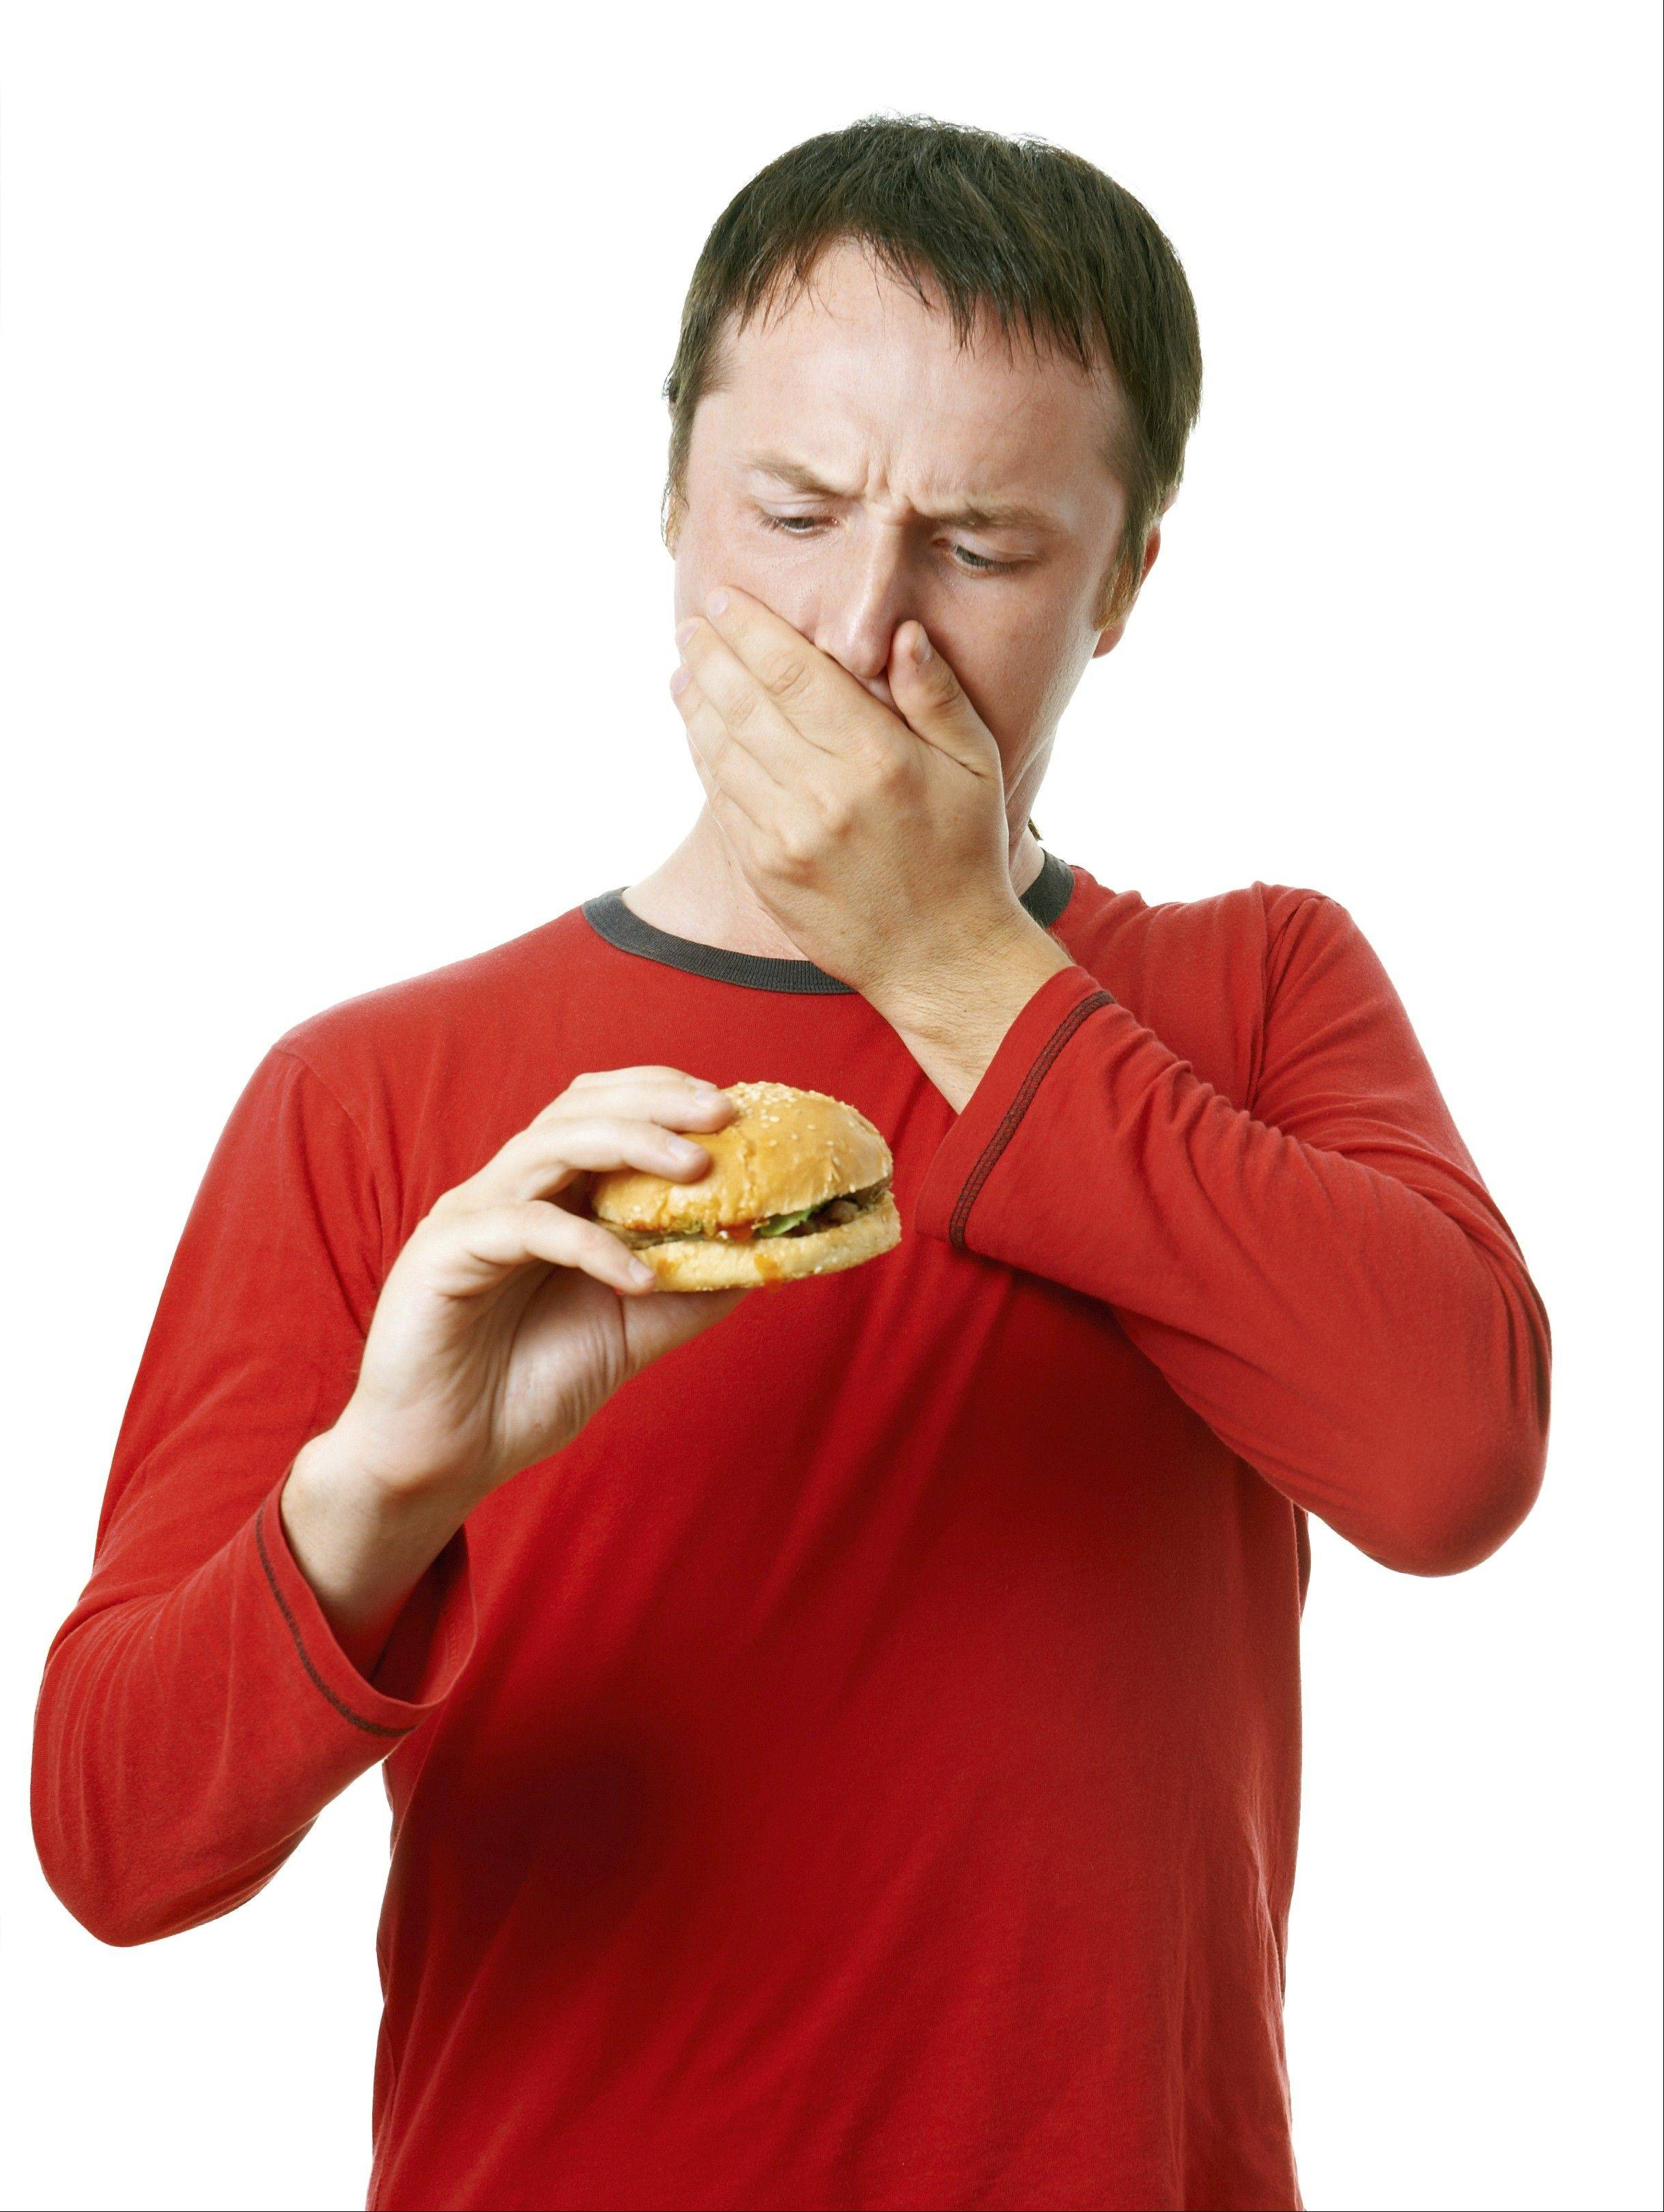 Do you have an allergy to that burger? Alpha-gal allergy is a reaction to red meat that results from having been bitten by a tick.